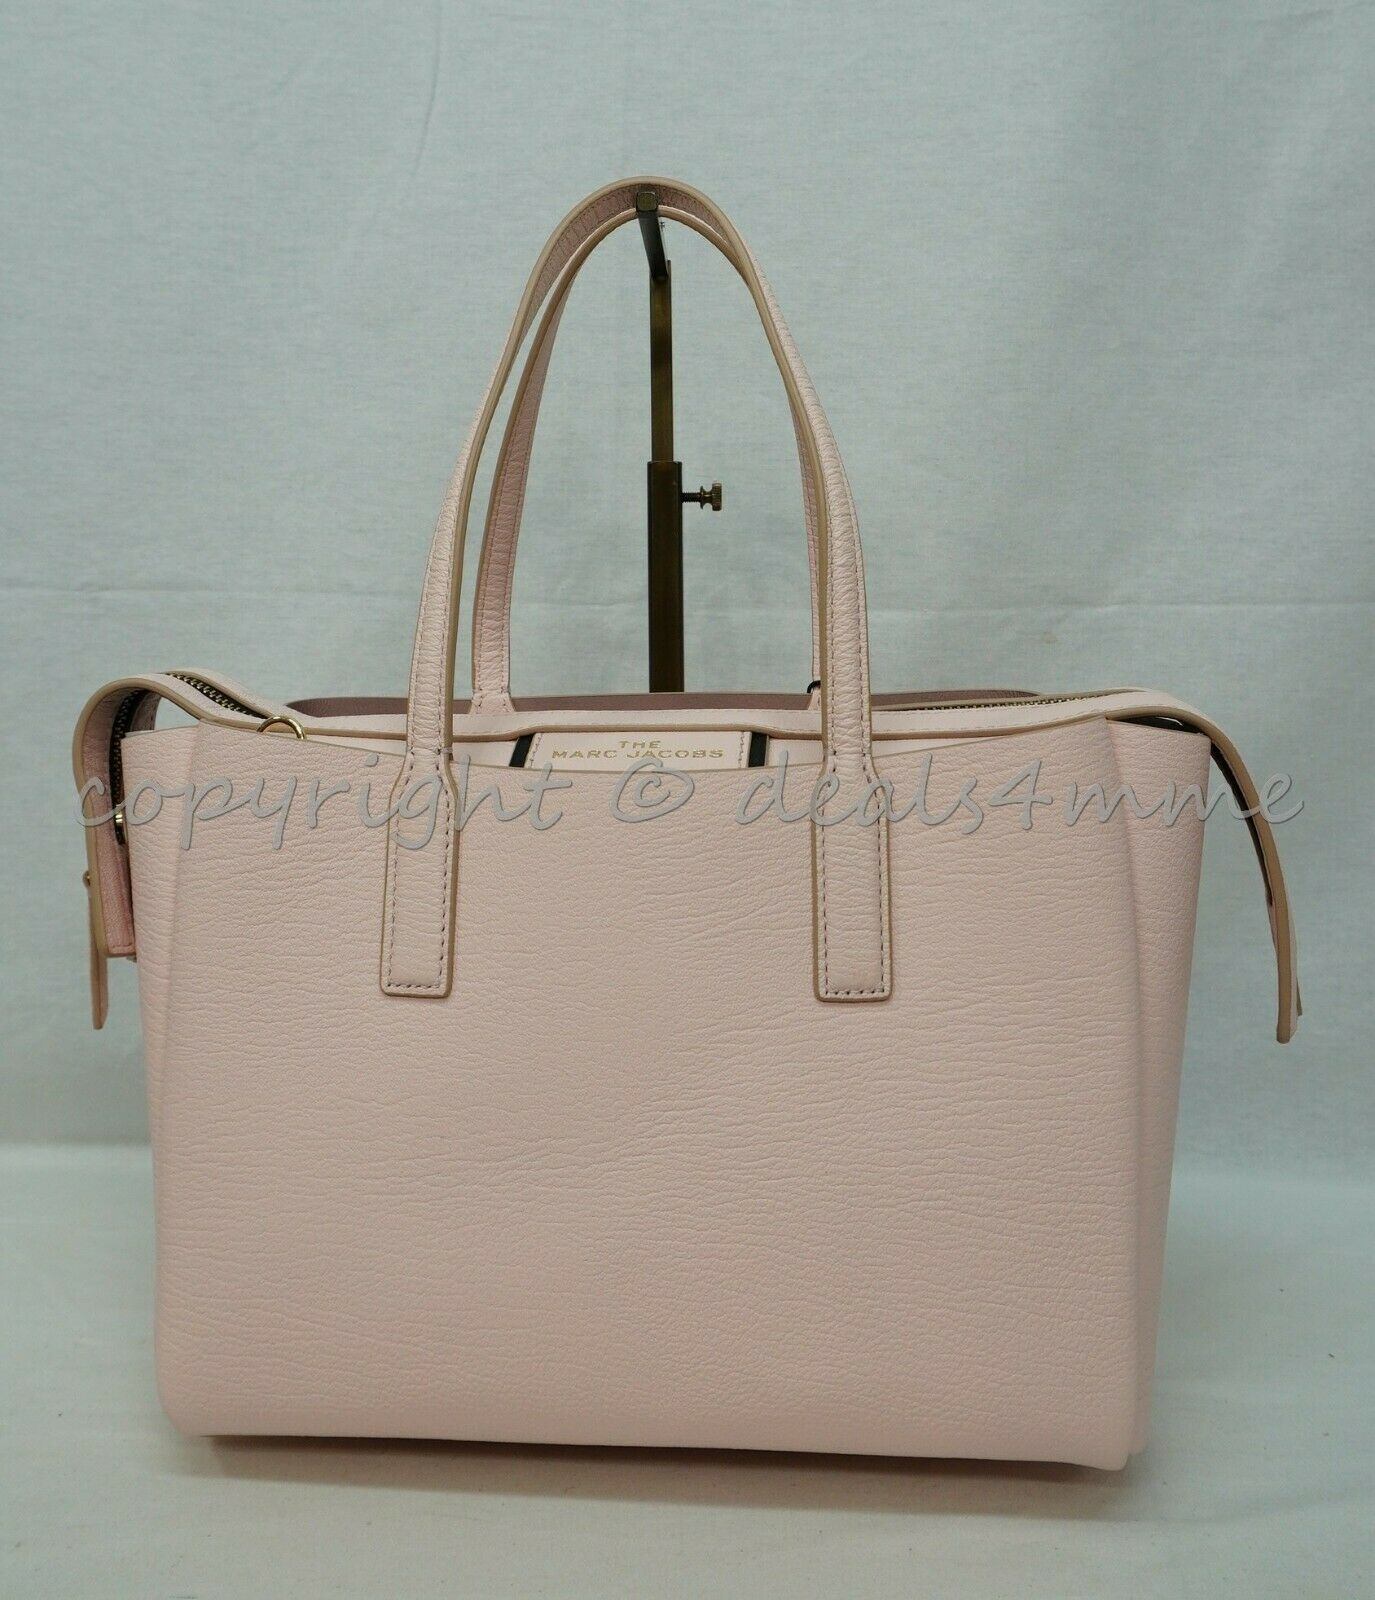 Primary image for Marc Jacobs M0016160 The Mini Protégé Leather Satchel/Shoulder Bag in Pink Tutu